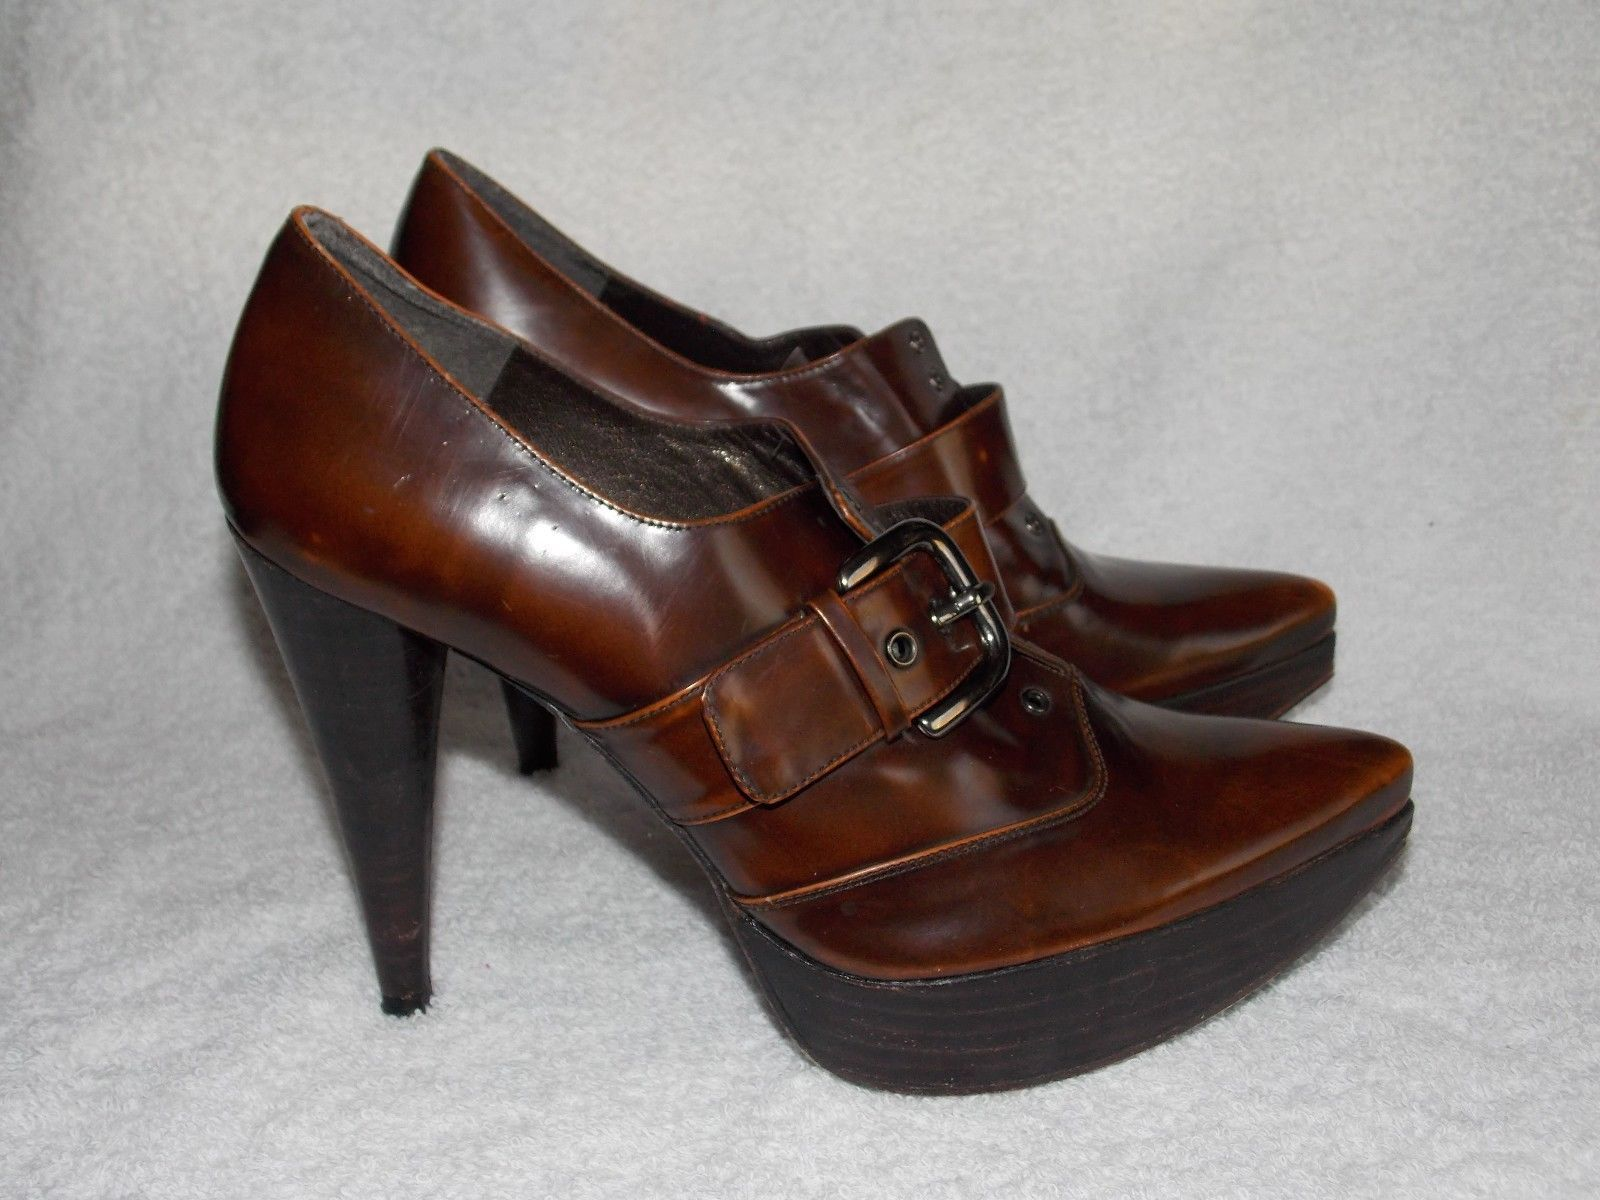 Primary image for Stuart Weitzman Leather Buckle Brown POINTY TOE Pump Heels 7M Used